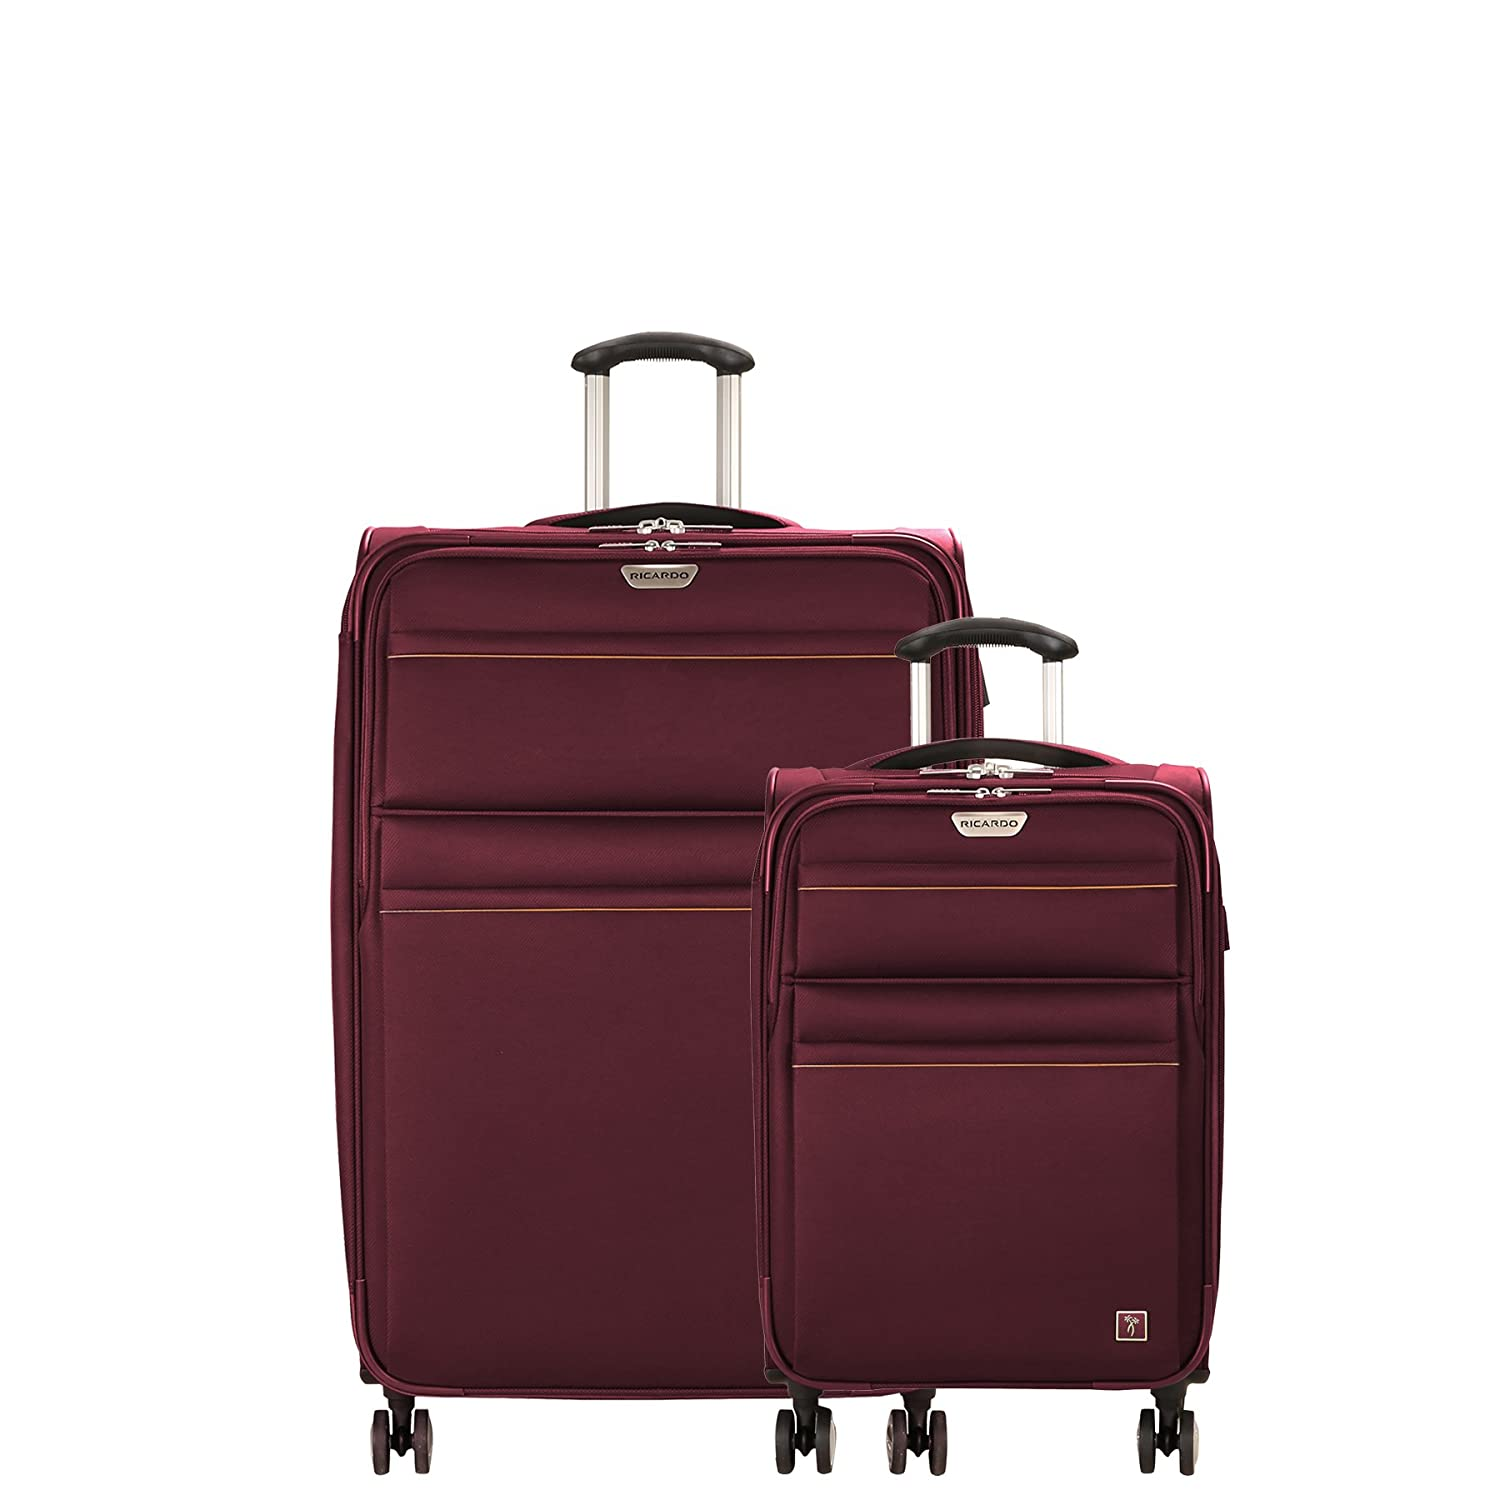 21-Inch C//O and 29-Inch Spinner 2-Piece Set Wine Ricardo Beverly Hills Mar Vista 2.0